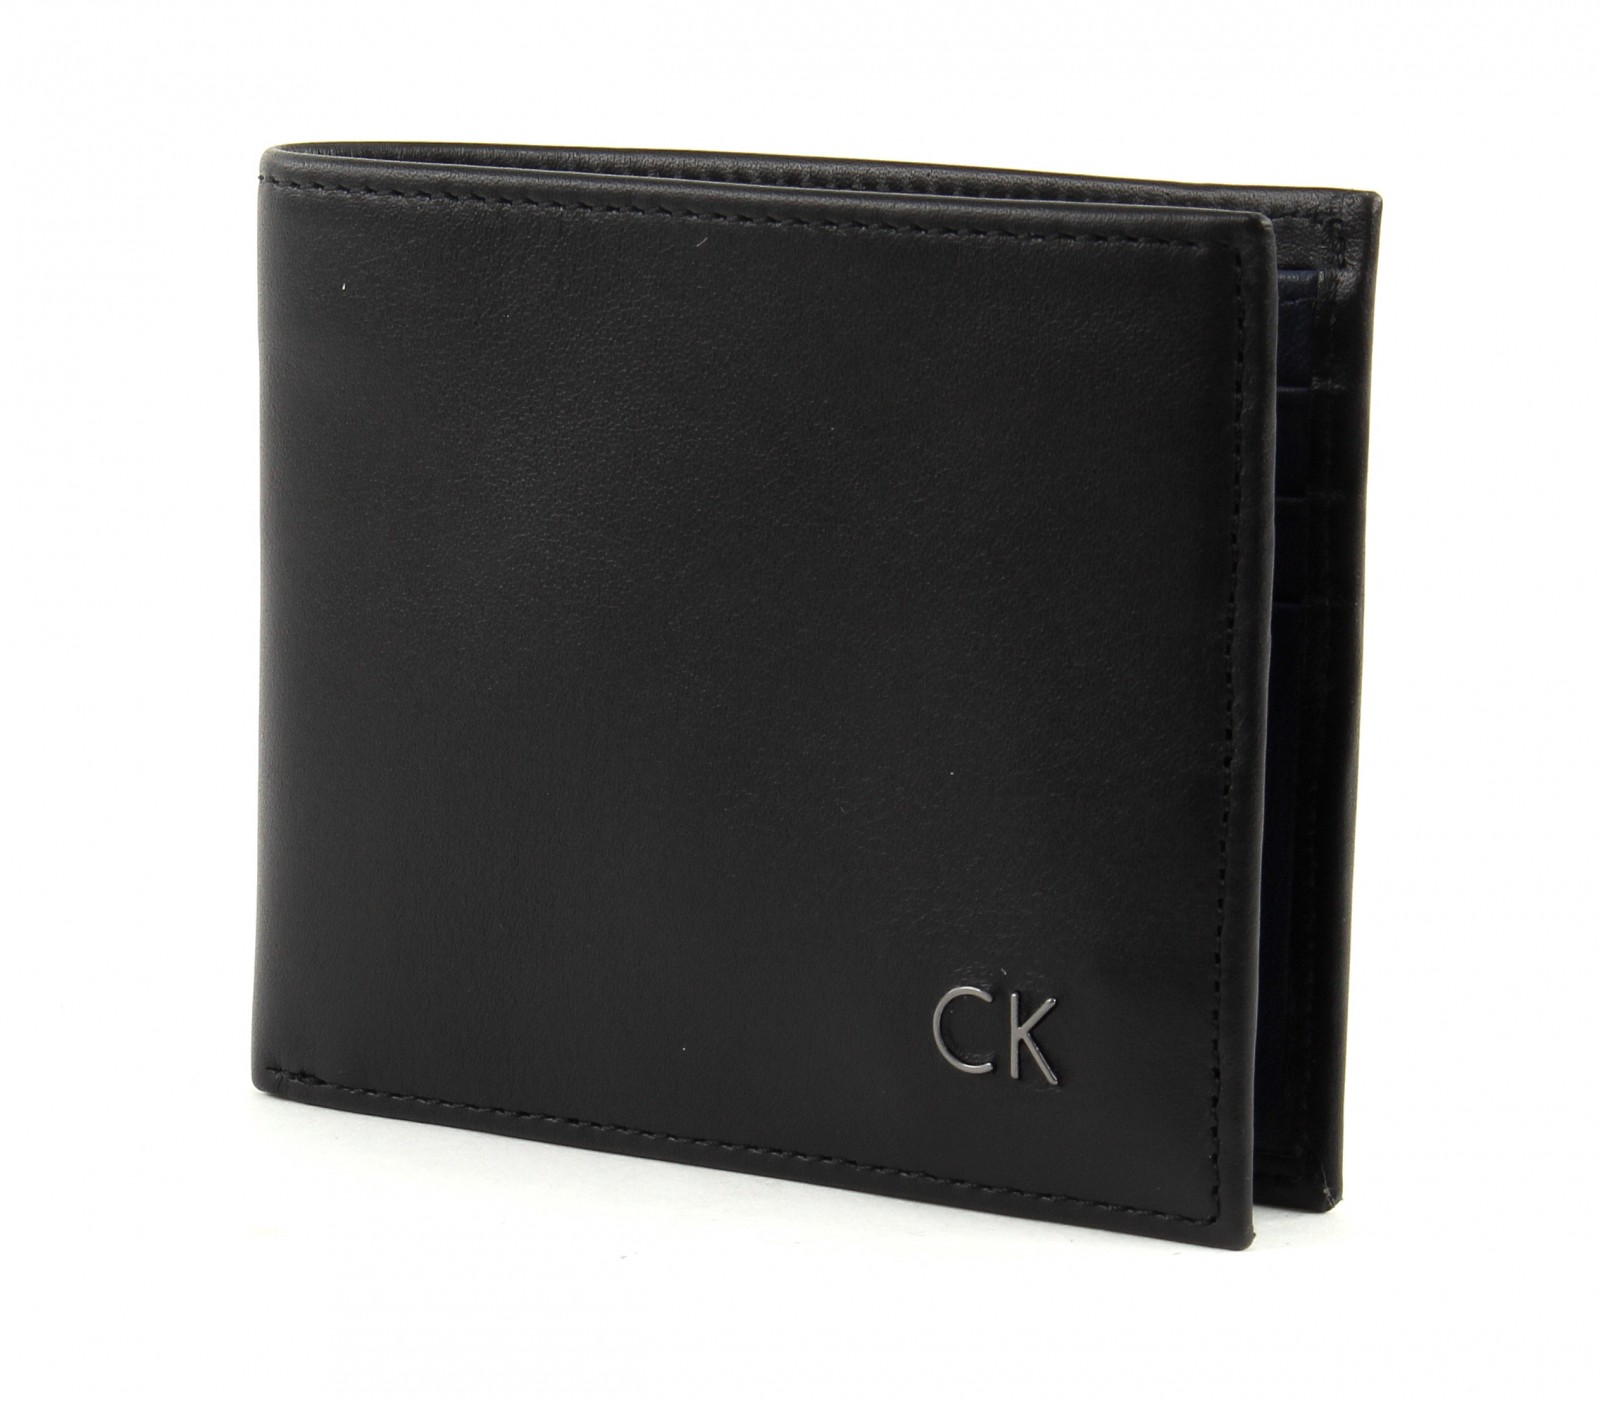 calvin klein l3on billfold 8cc geldb rse portemonnaie. Black Bedroom Furniture Sets. Home Design Ideas